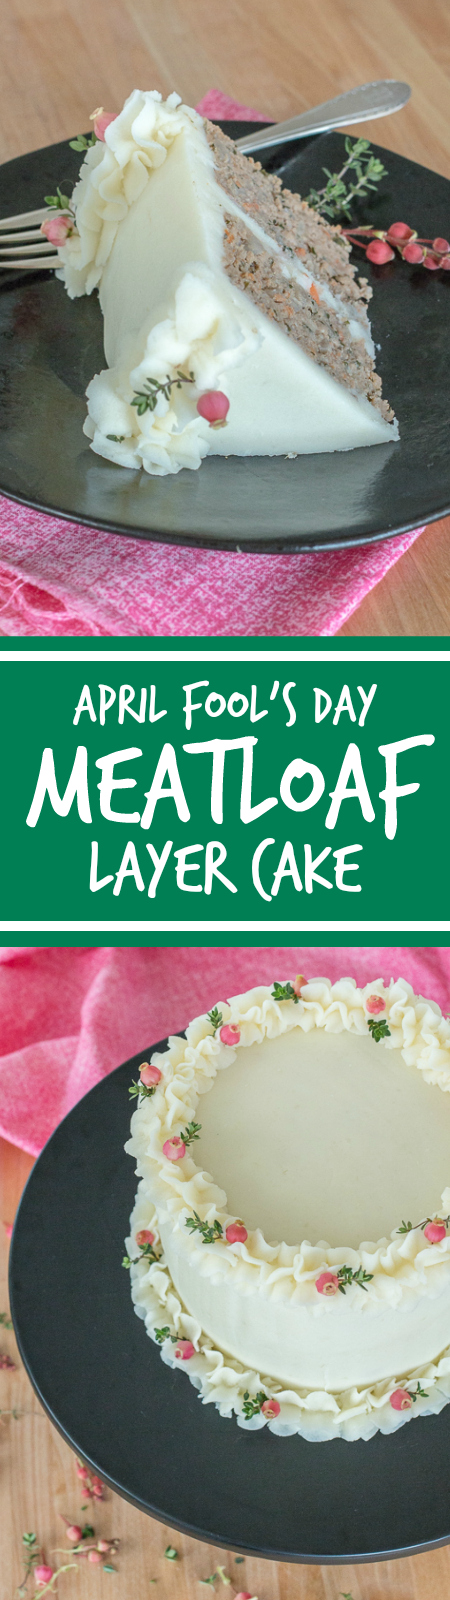 Surprise your friends and family on April Fool's Day with this comfort-food-gone-fancyMeatloaf Layer Cake.Each slice delivers a perfect serving of savory, flavorful meatloaf covered with smooth, creamy Gruyere mashed potatoes.